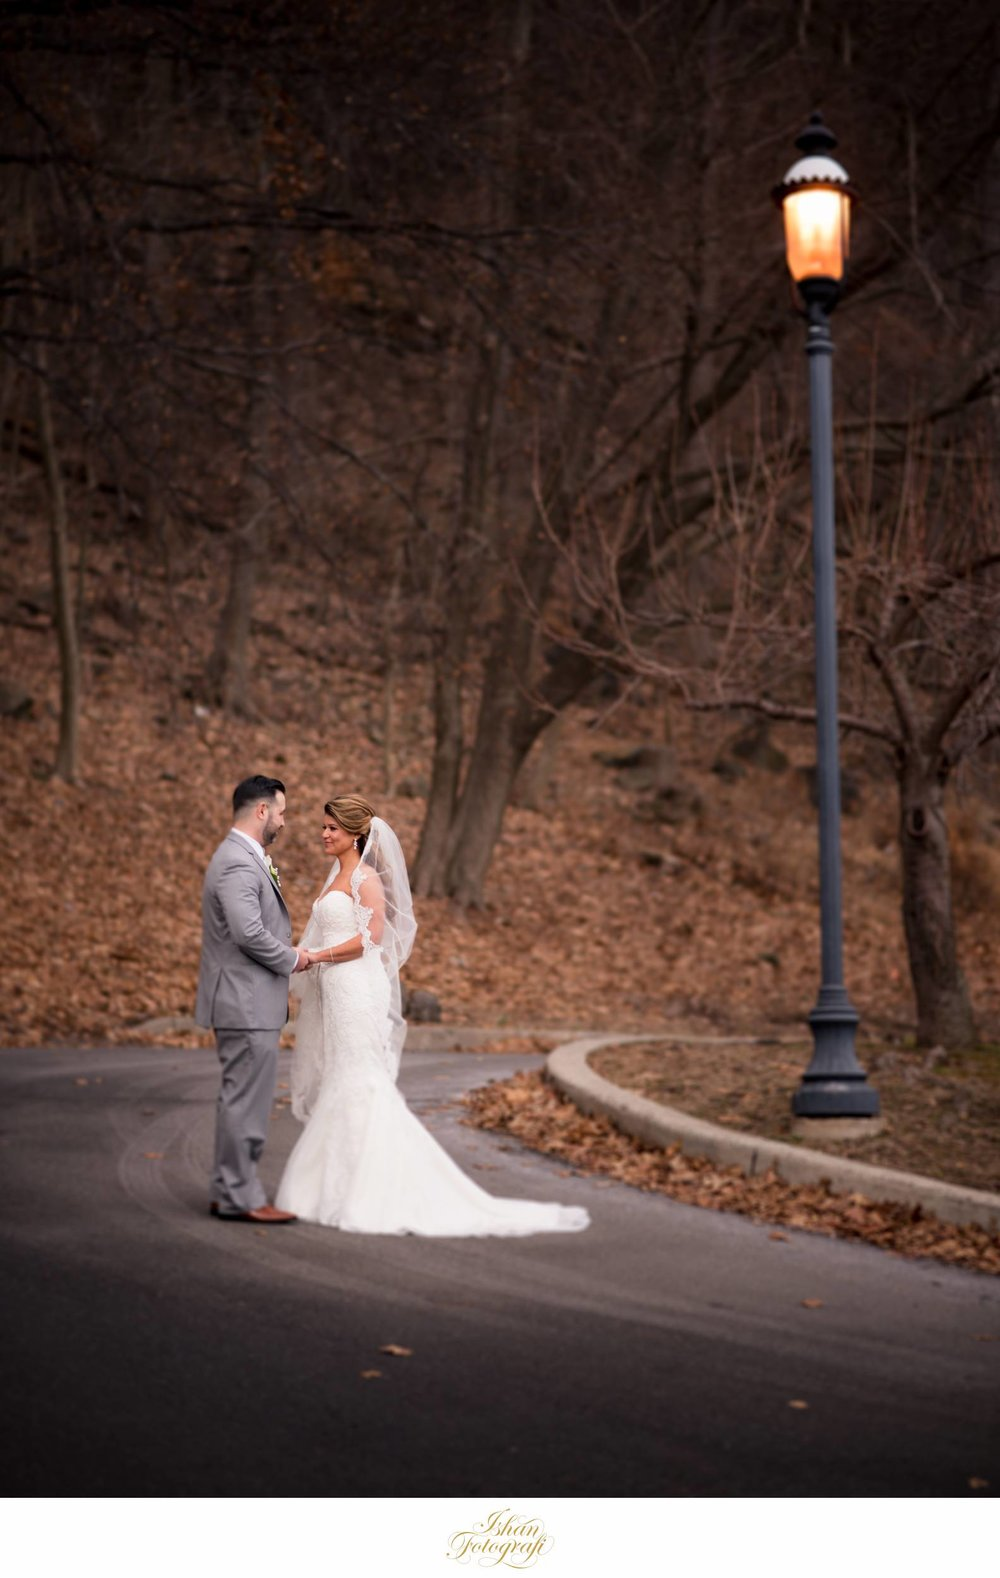 One of our favorite shots of Justin & Mehtap from their wedding at The Bethwood, NJ.